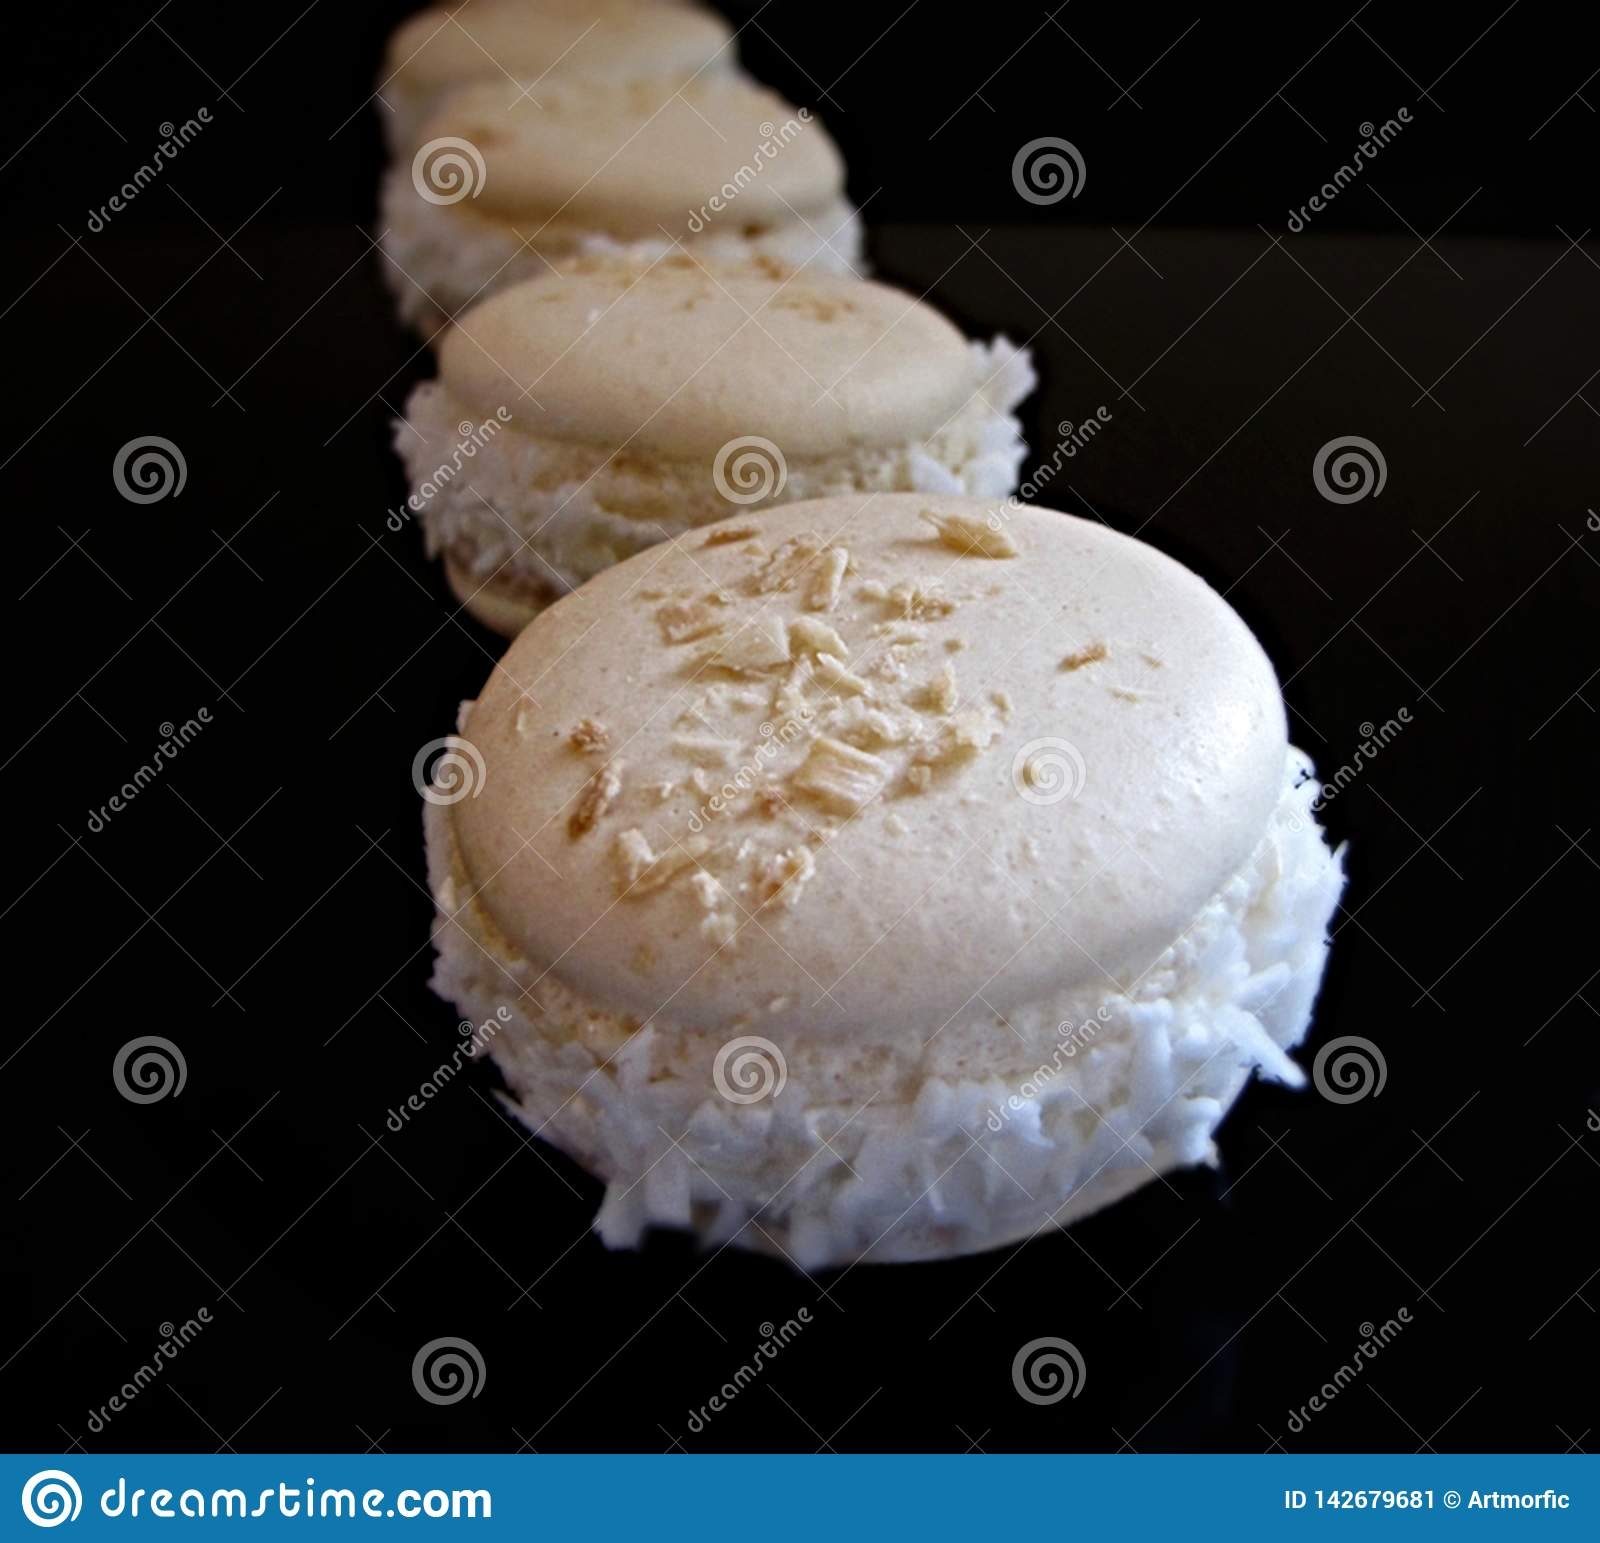 Coconut french macarons on black background